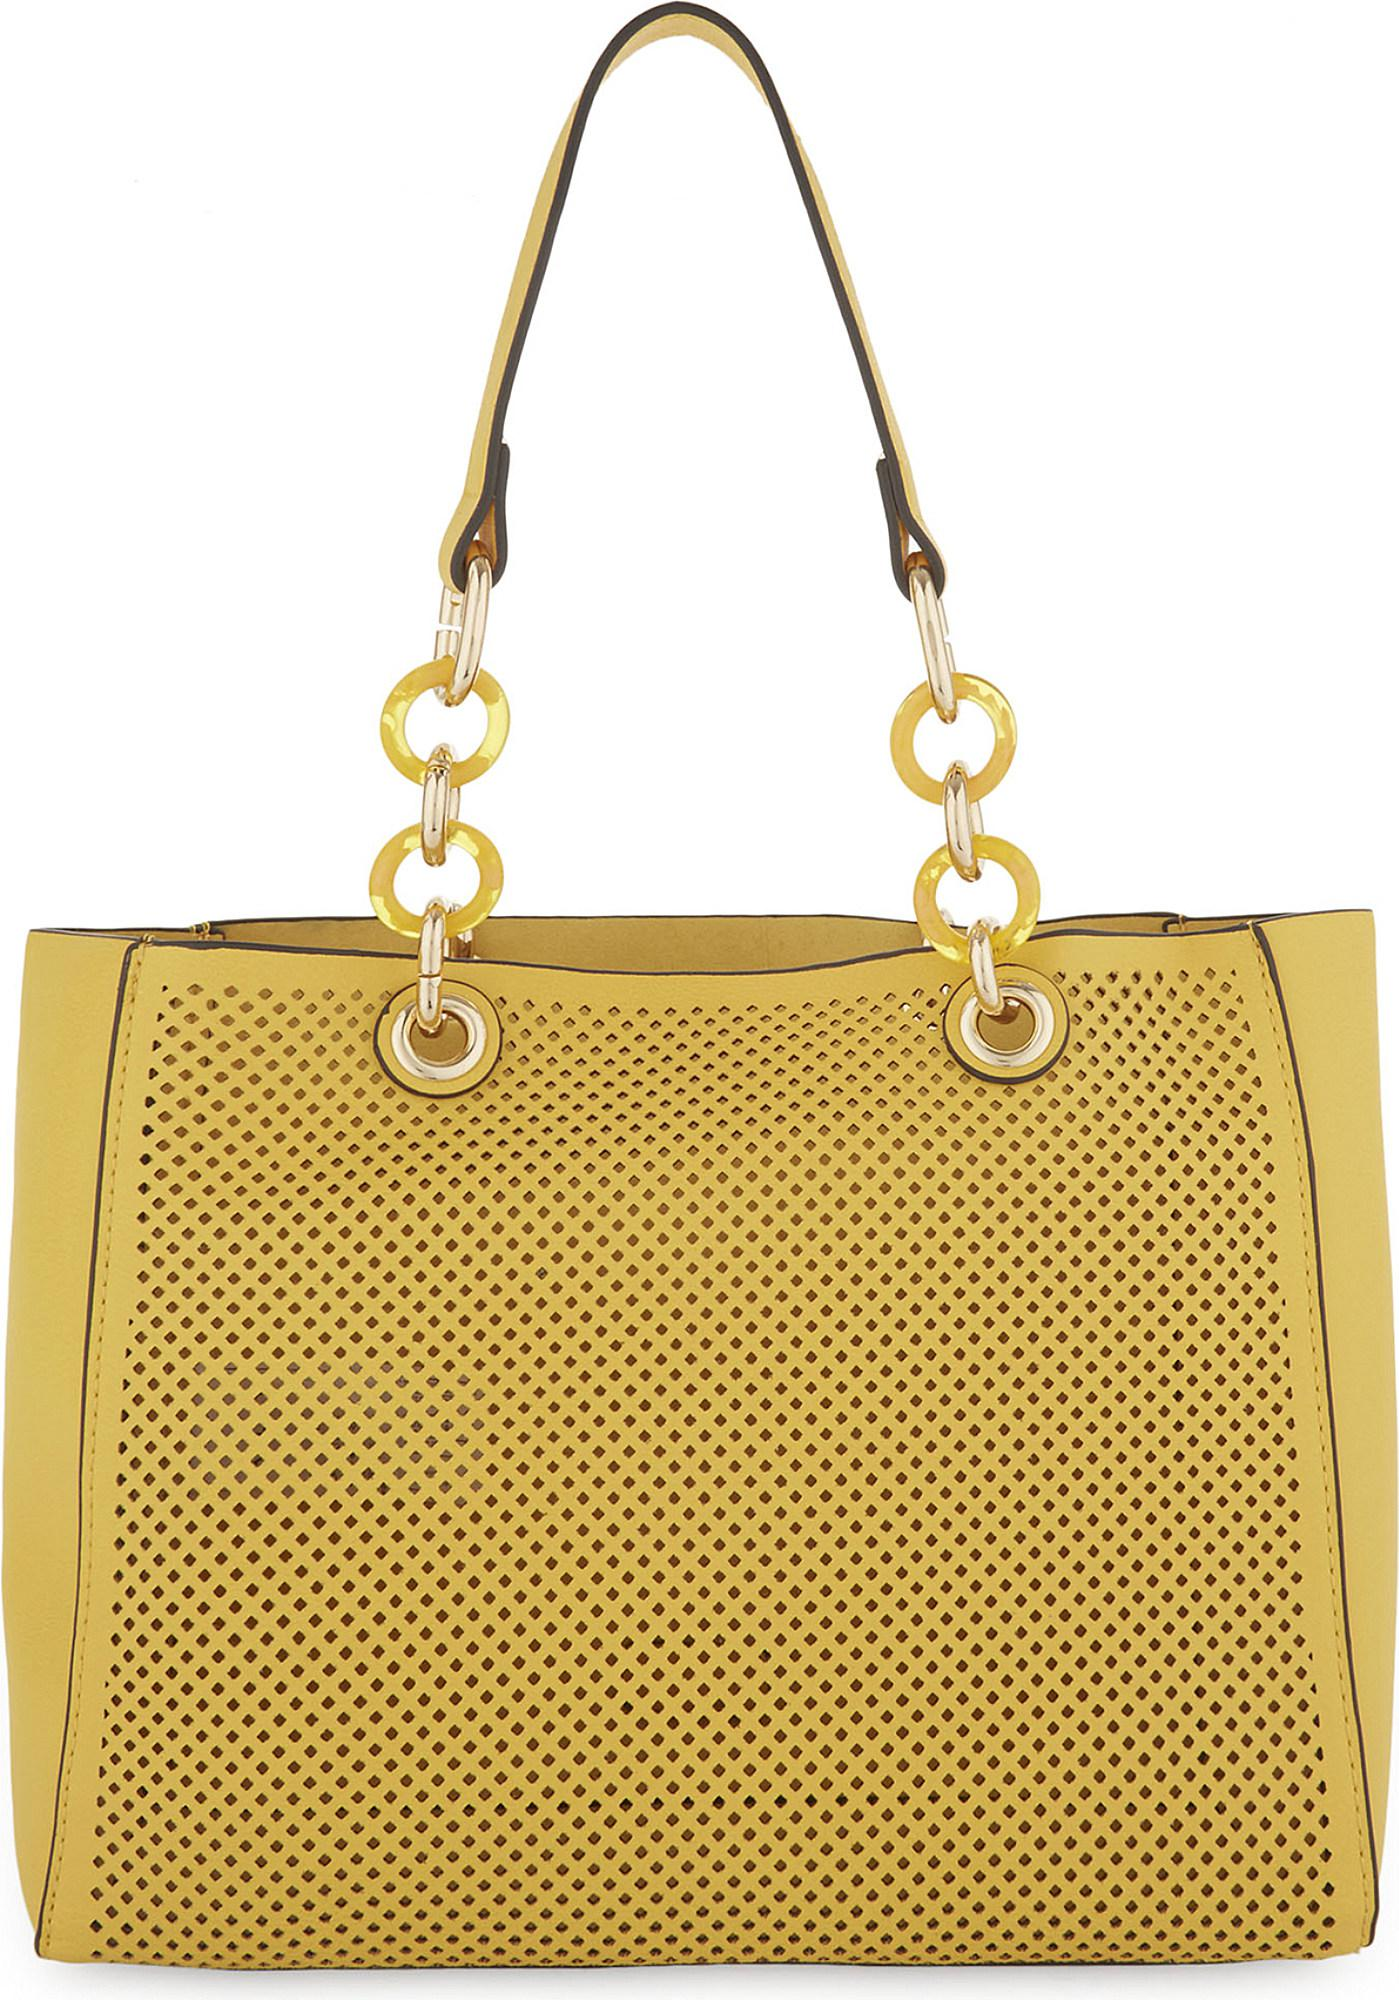 165e8442000 ALDO Werlinger Faux-leather Tote in Yellow - Lyst